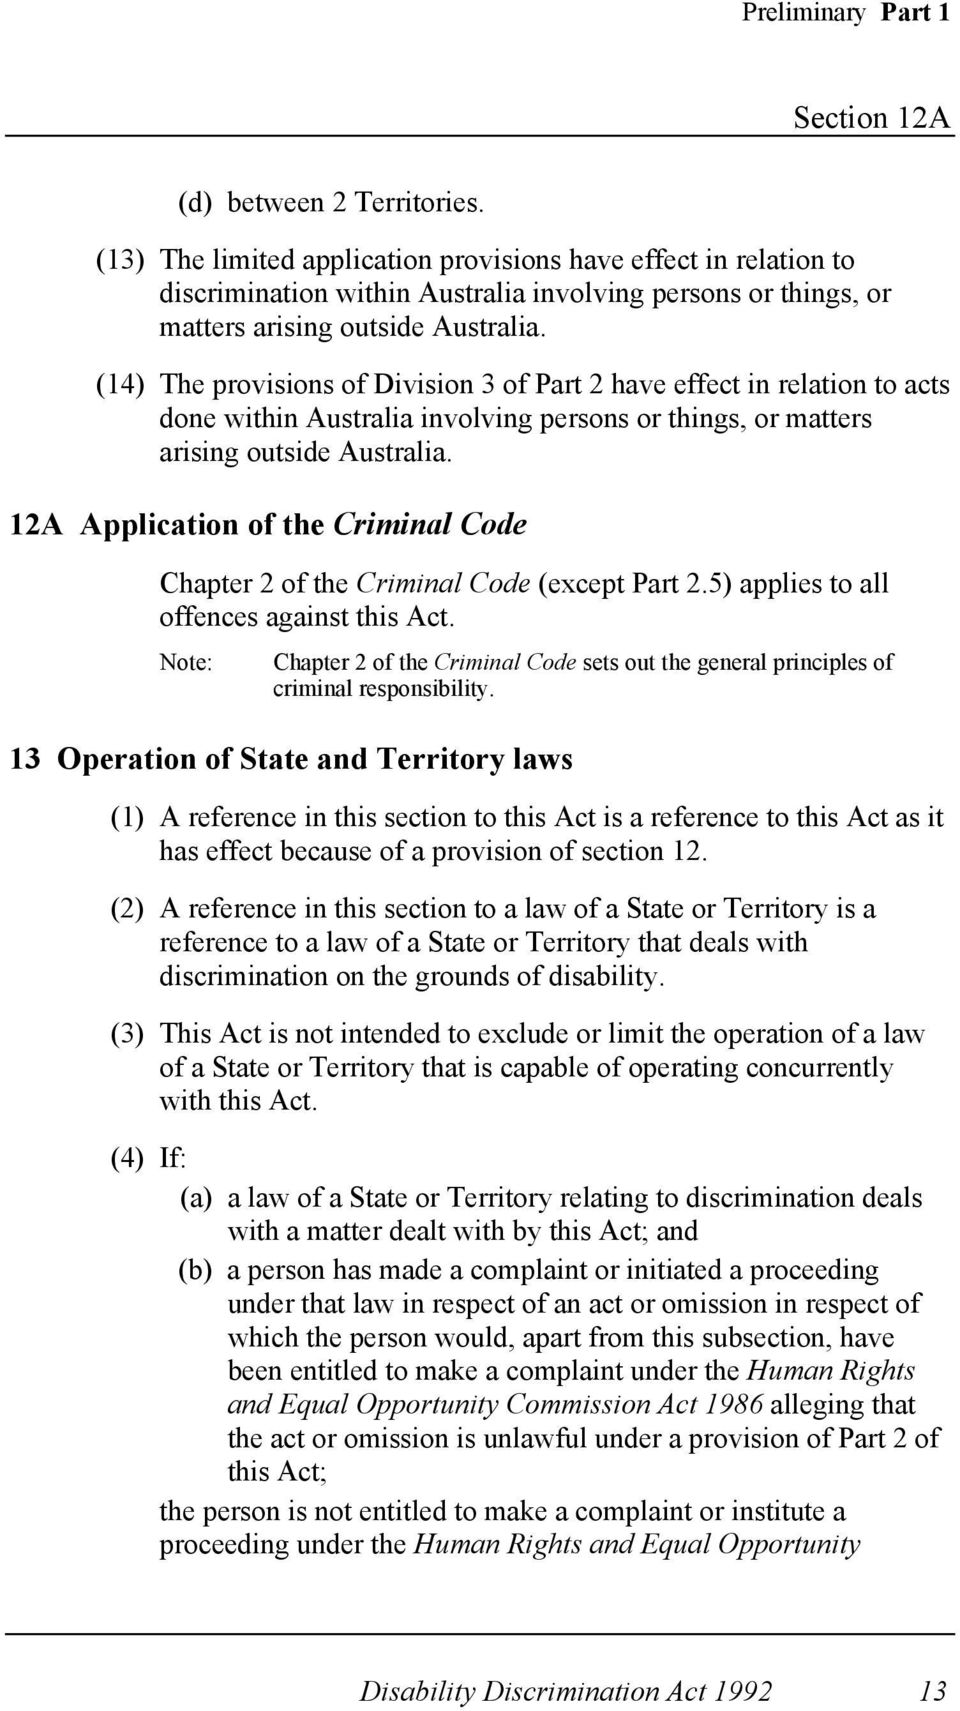 (14) The provisions of Division 3 of Part 2 have effect in relation to acts done within Australia involving persons or things, or matters arising outside Australia.